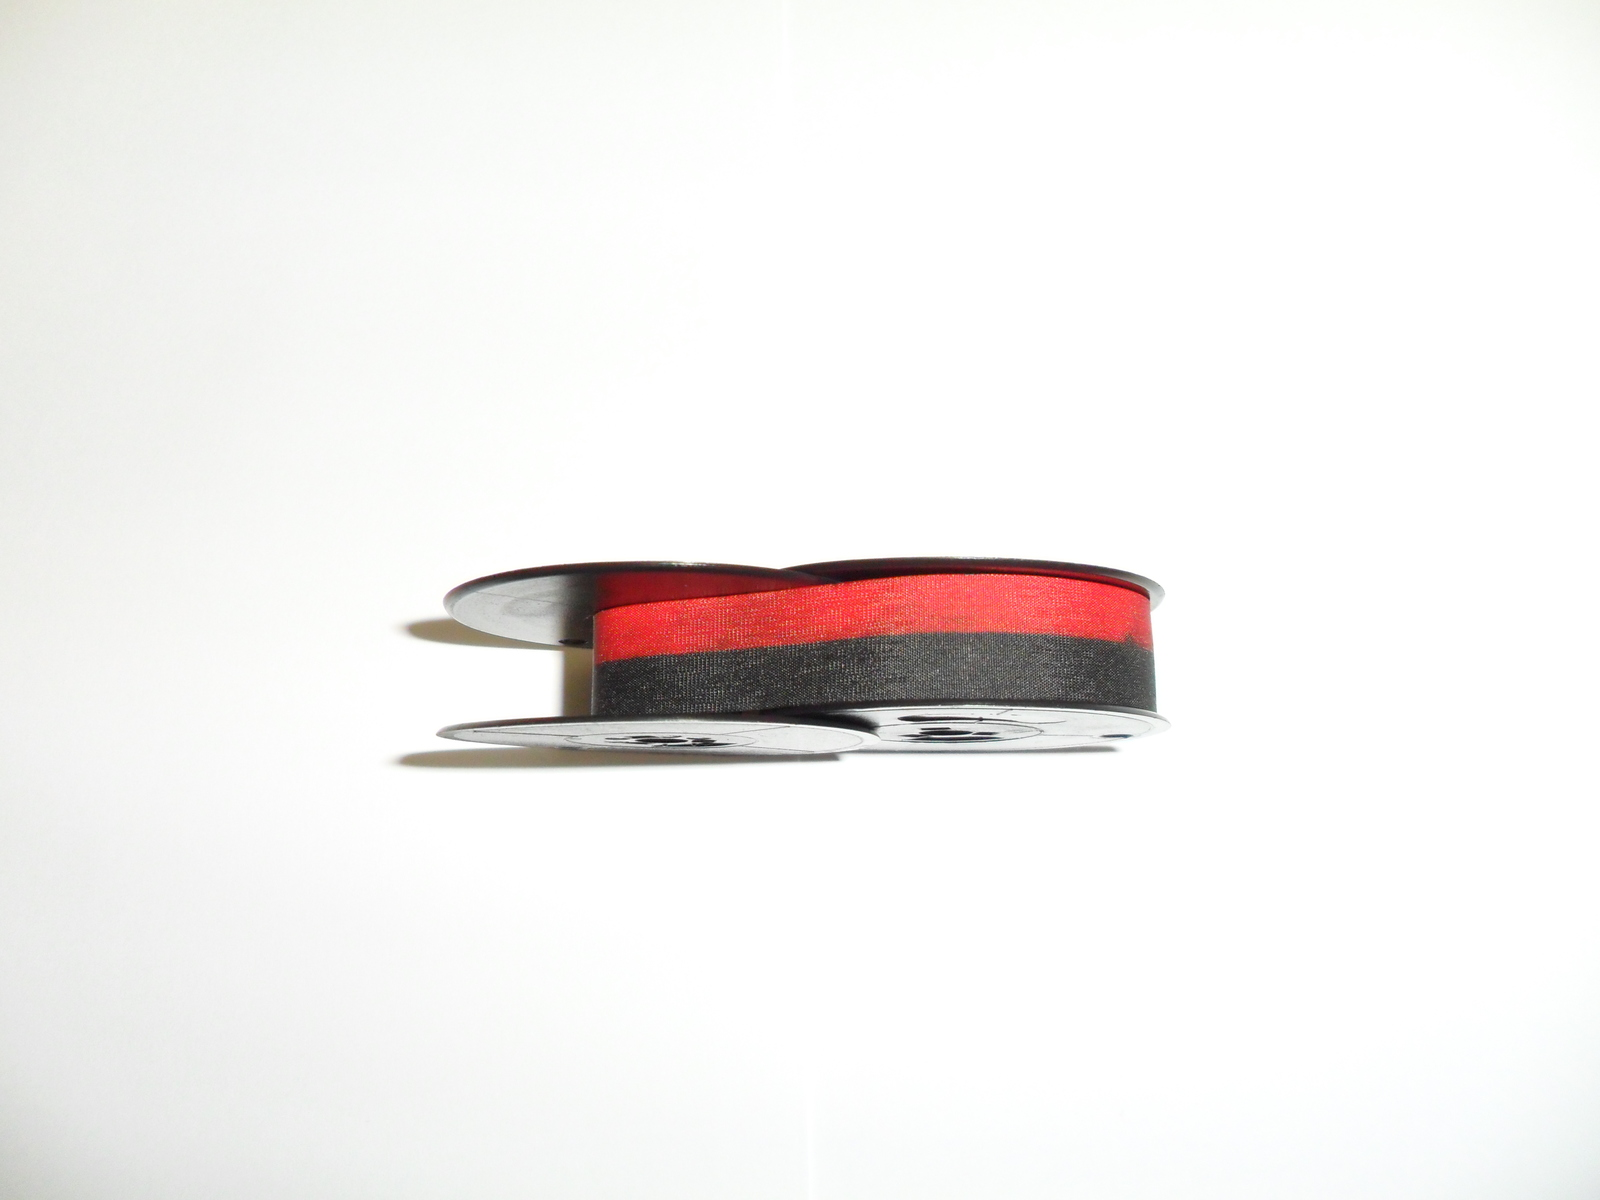 Olivetti Lettera 32 35 36 36C Typewriter Ribbon Black and Red Original Olivetti